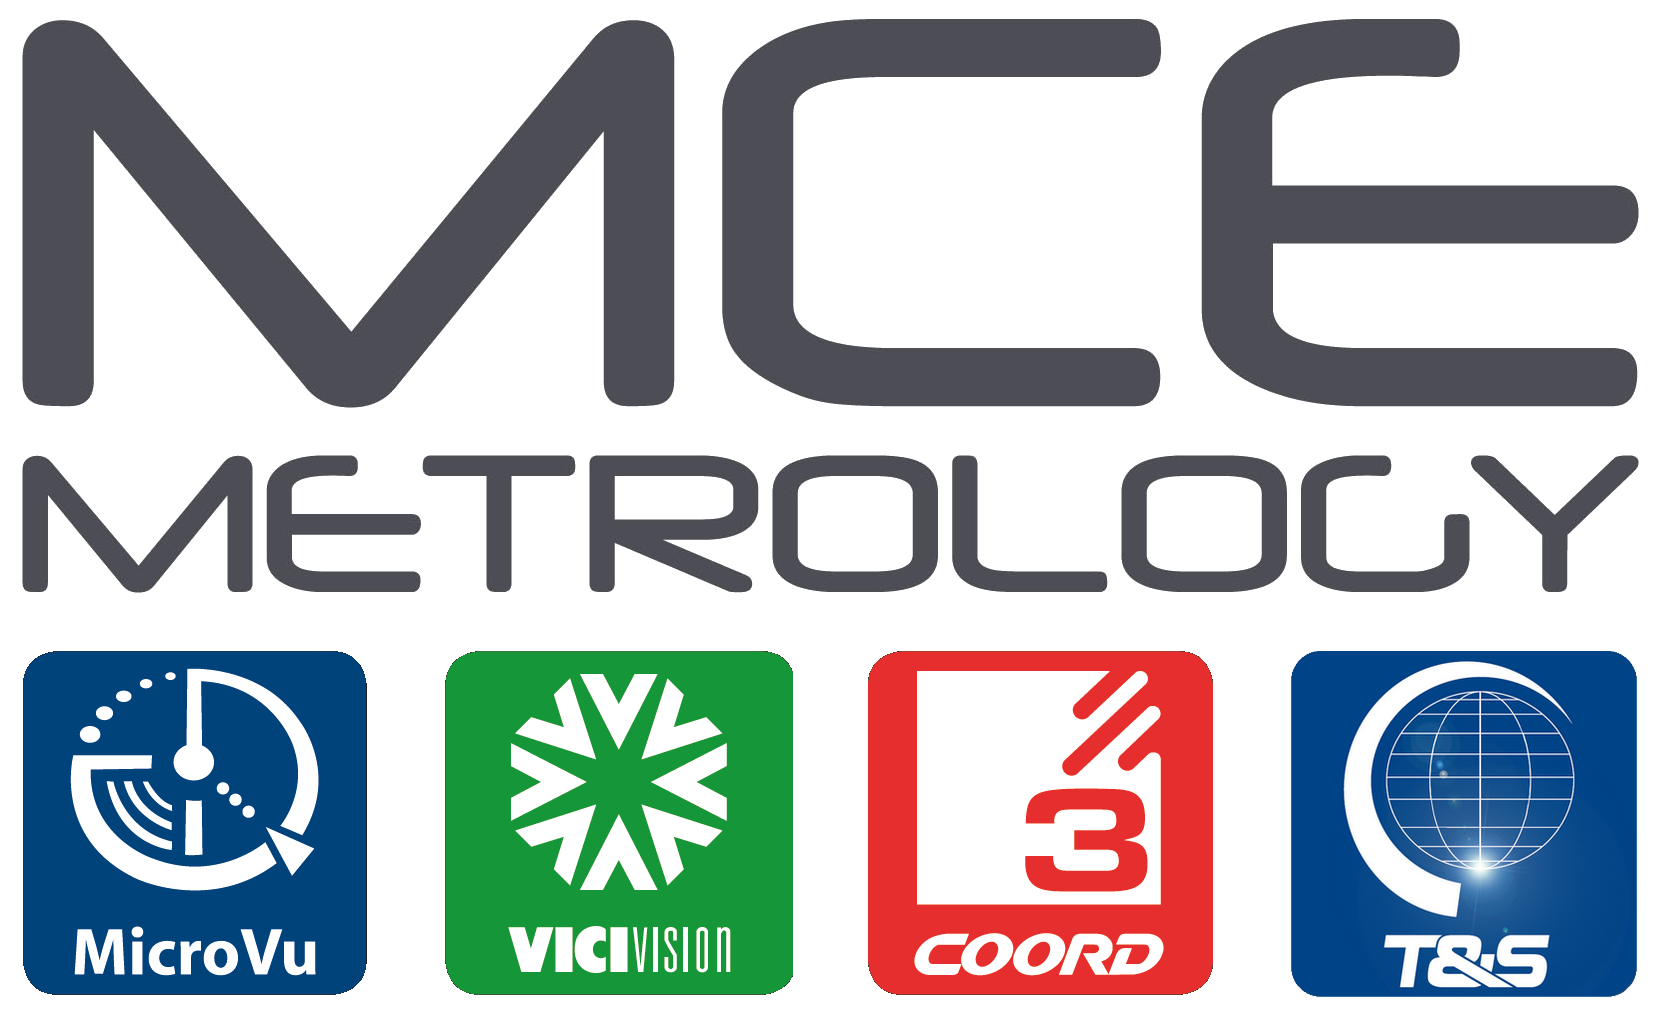 1581006098-mce-metrology-microvu-vici-vision-coord3-t-s.png